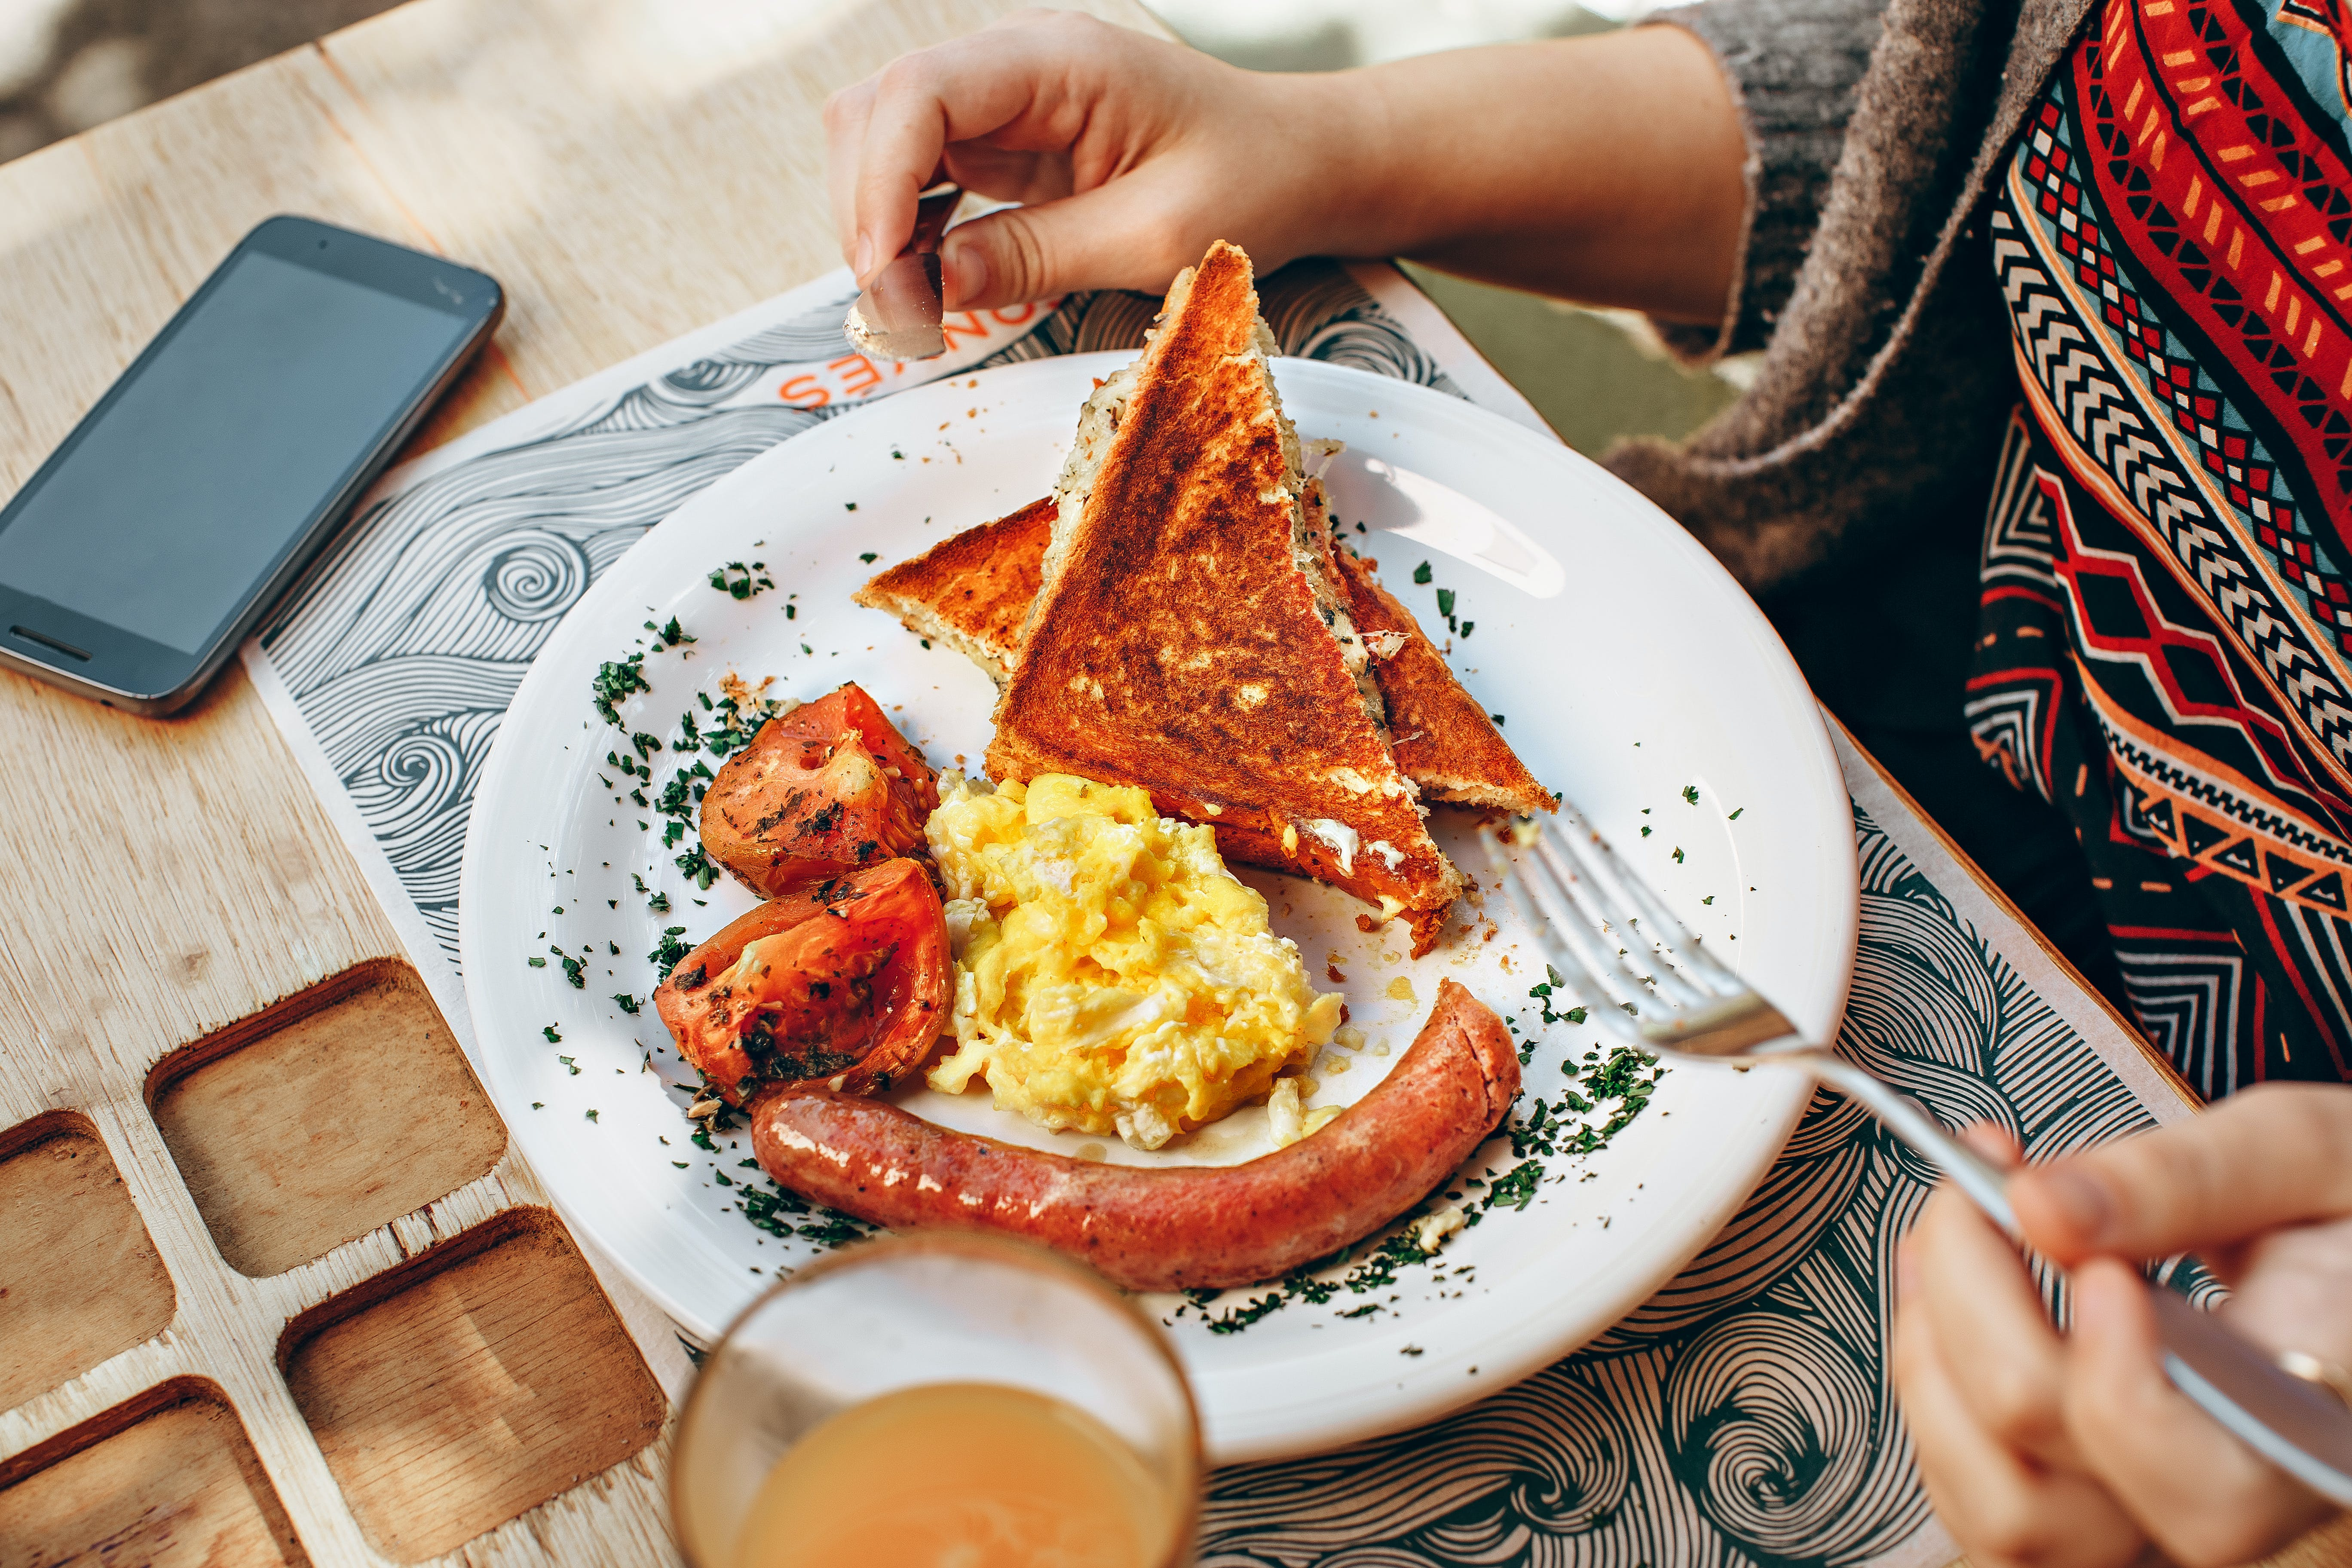 Toaster Bread, Scrambled Eggs, Grilled Tomato and Sausage